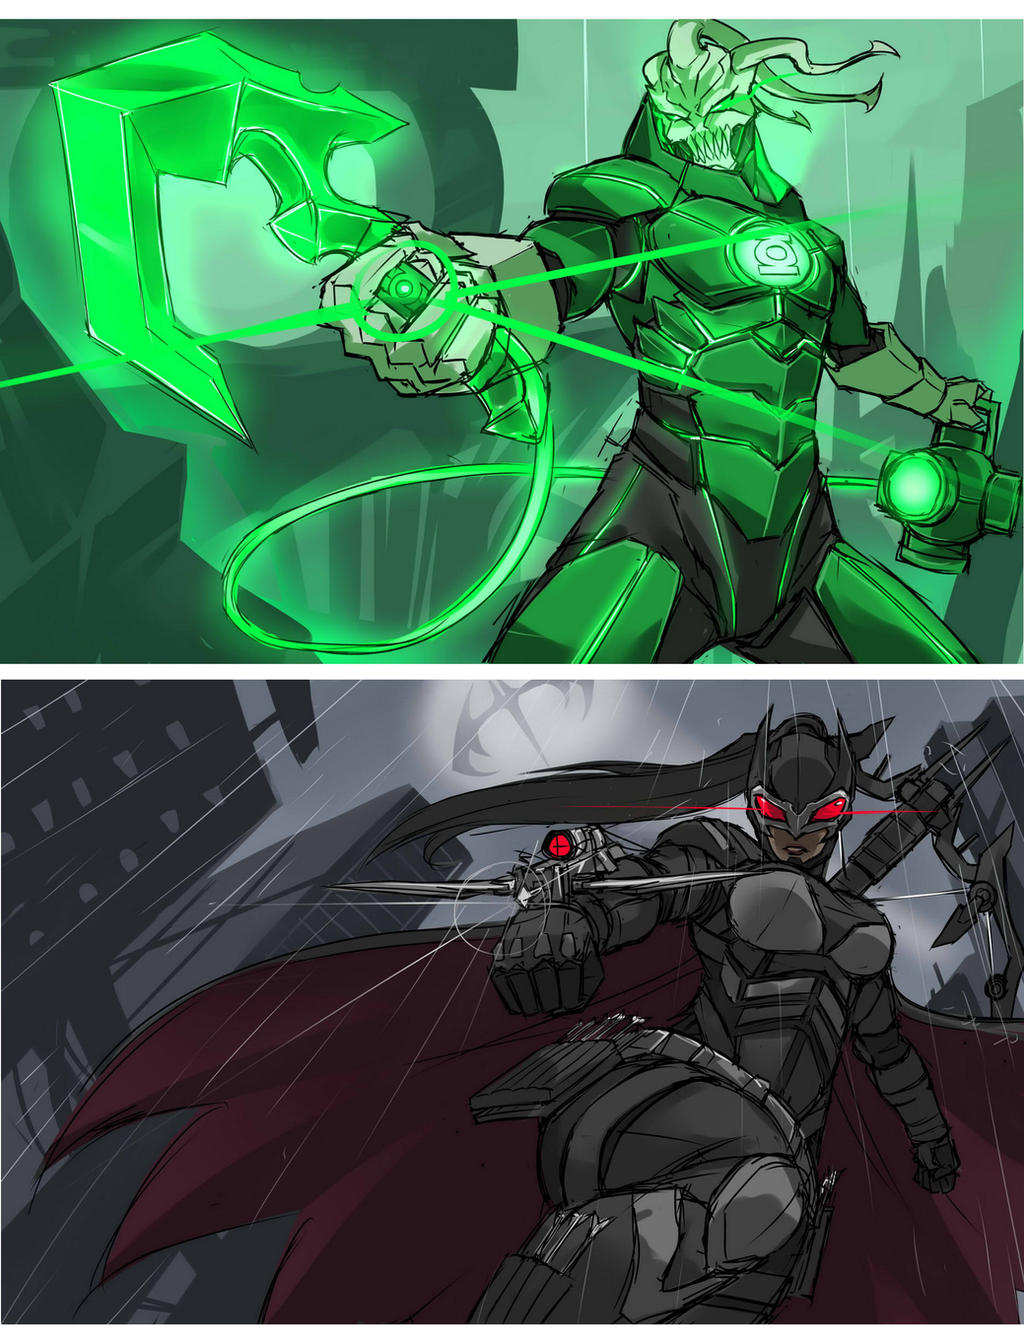 Thresh Lantern and  Dark knight Vayne by Exaxuxer